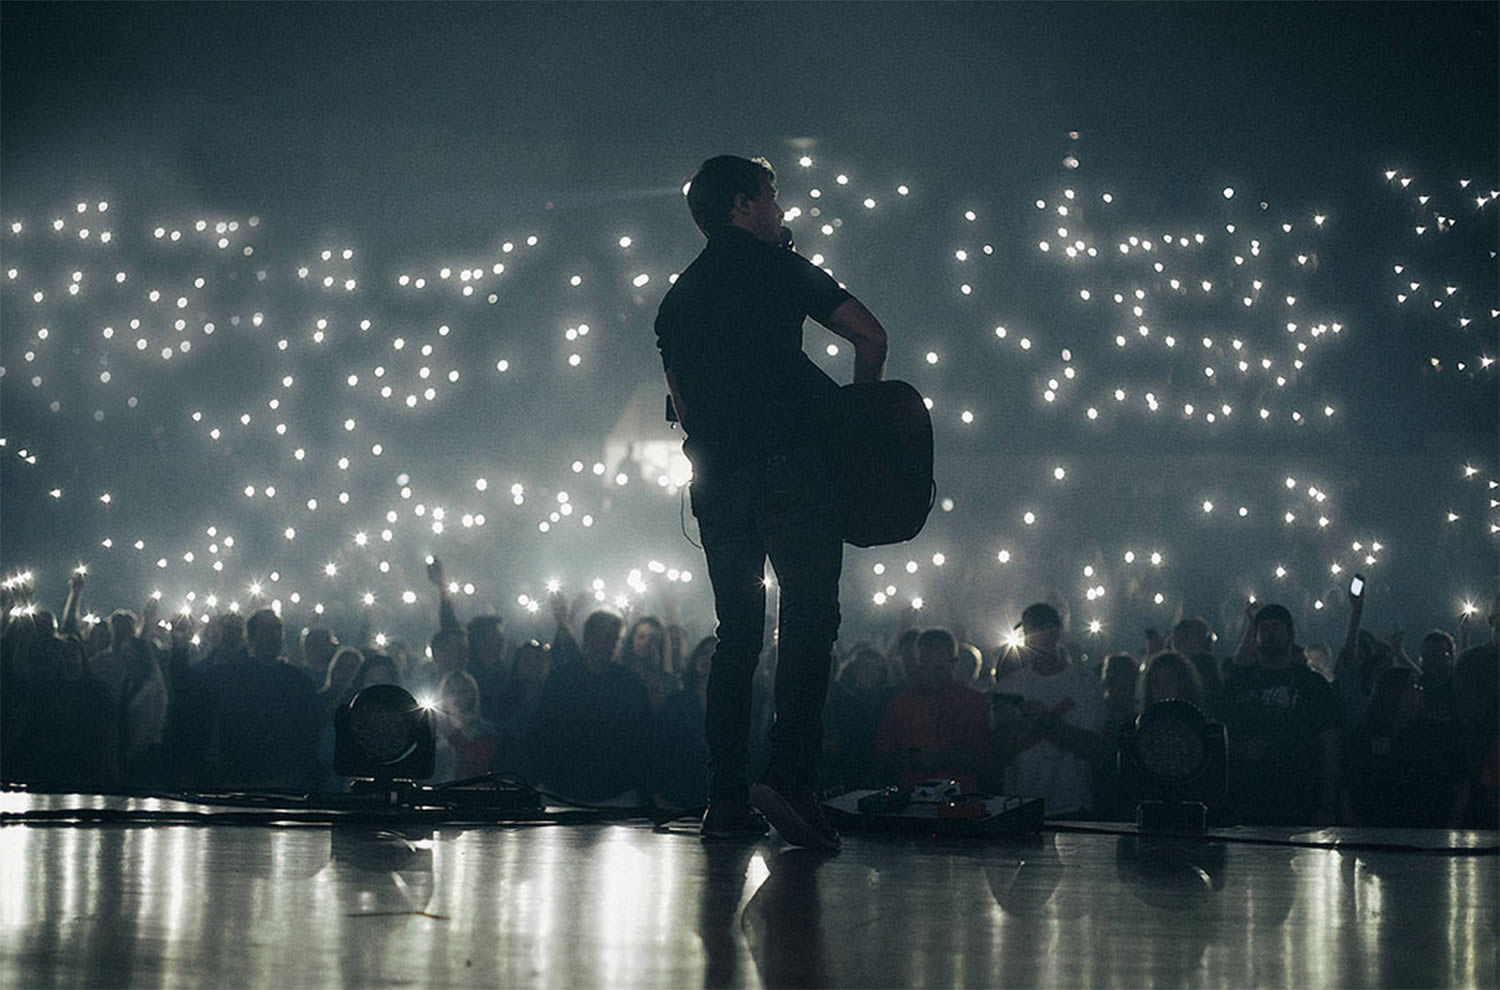 guy with guitar, music concert